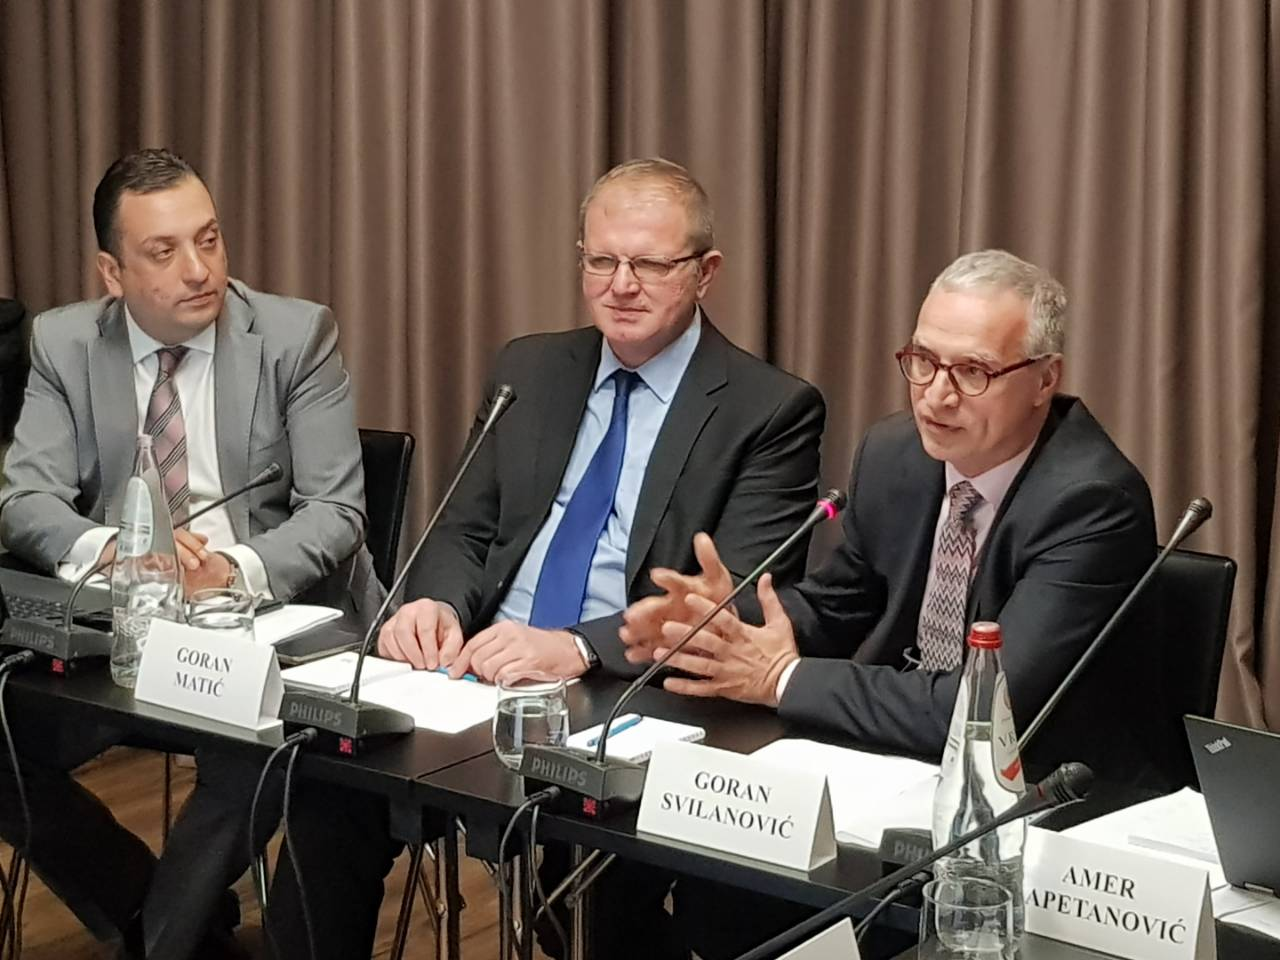 Opening remarks of the RCC Secretary General Goran Svilanovic (first on the right) at Regional Expert Conference and Workshop on Countering Online Radicalisation, Belgrade, 17-18 April 2018 (Photo: RCC/Natasa Mitrovic)